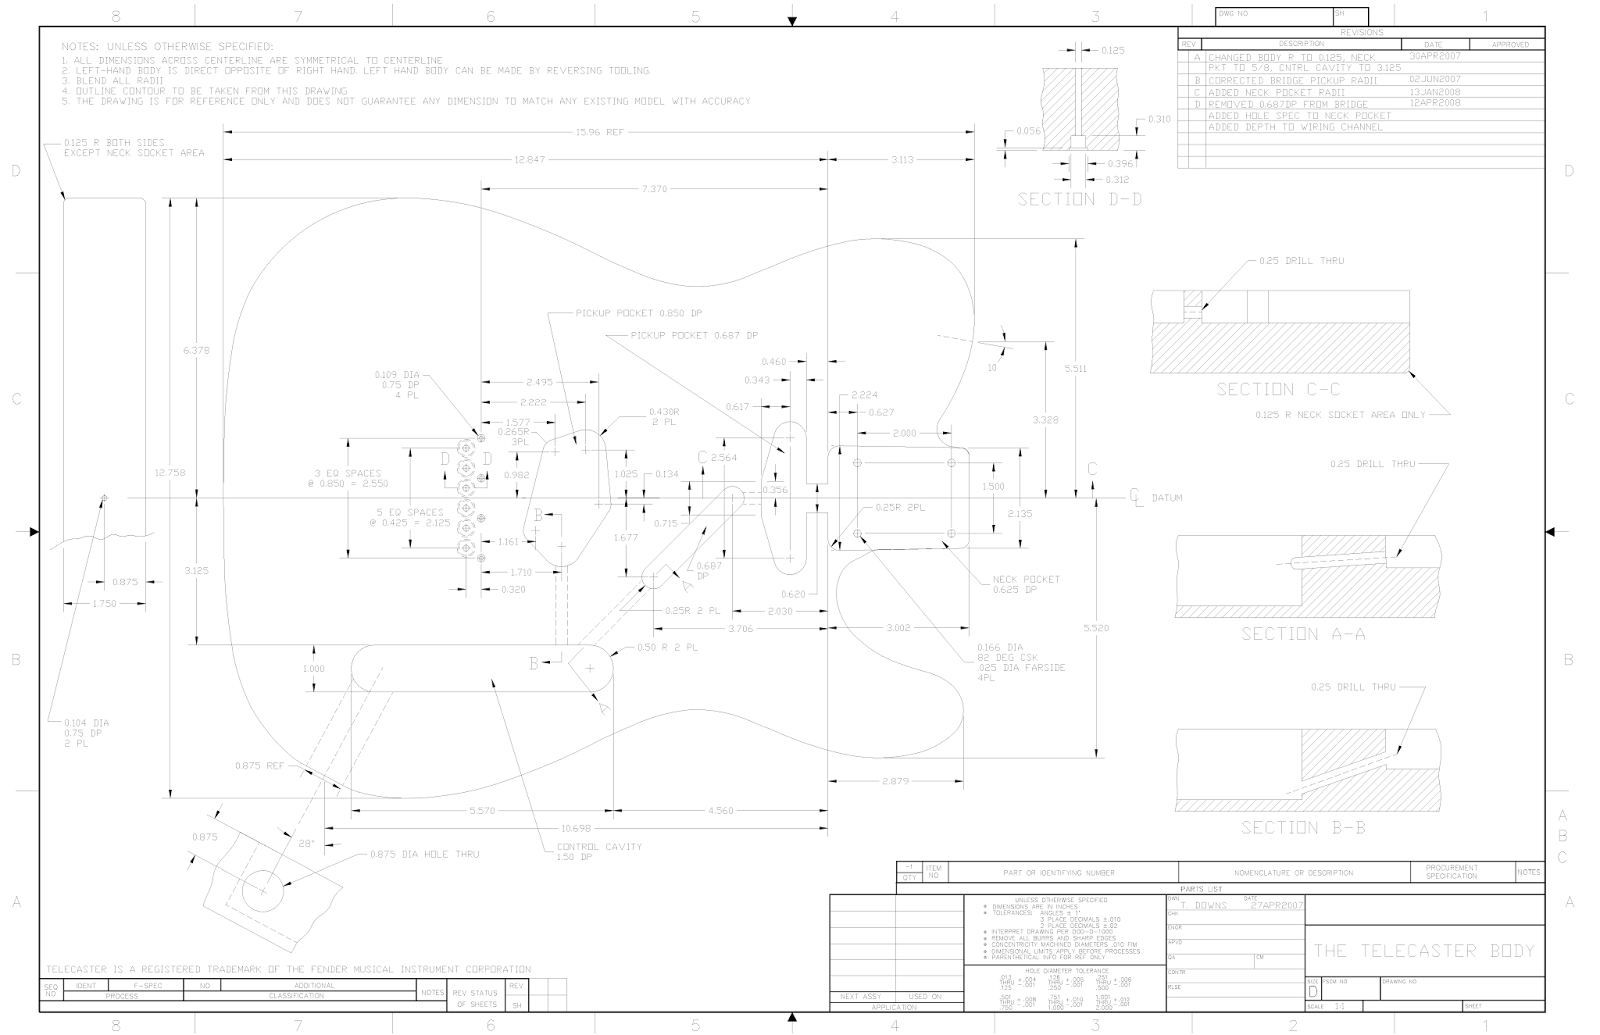 Cnc Router Wiring Diagram Diagrams Schematics Hive13 Wiki Exceptional Free Flyer Maker Unique Component Simple Pirantilaras2btelecaster